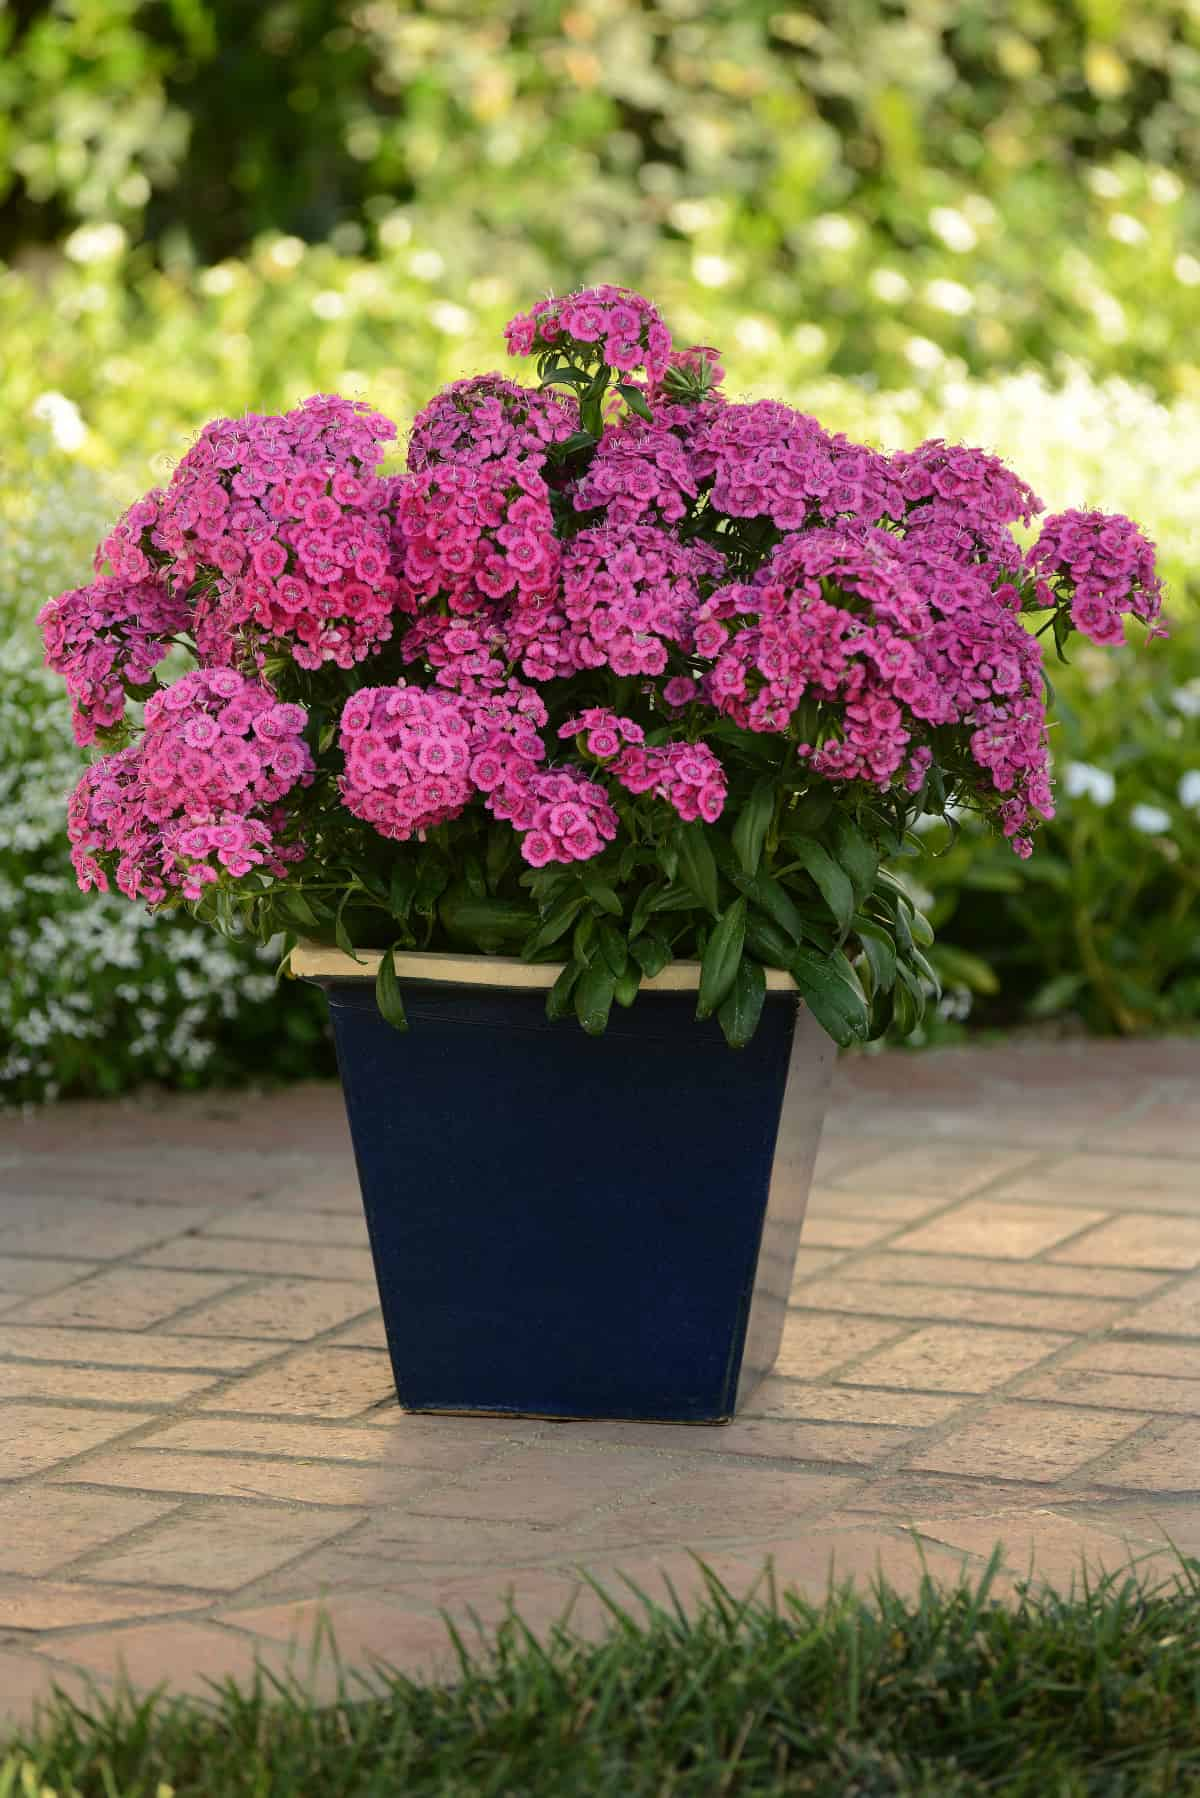 Dianthus interspecific jolt pink f1 all america selections dianthus jolt pink f1 jolt is the most heat tolerant dianthus on the market izmirmasajfo Choice Image